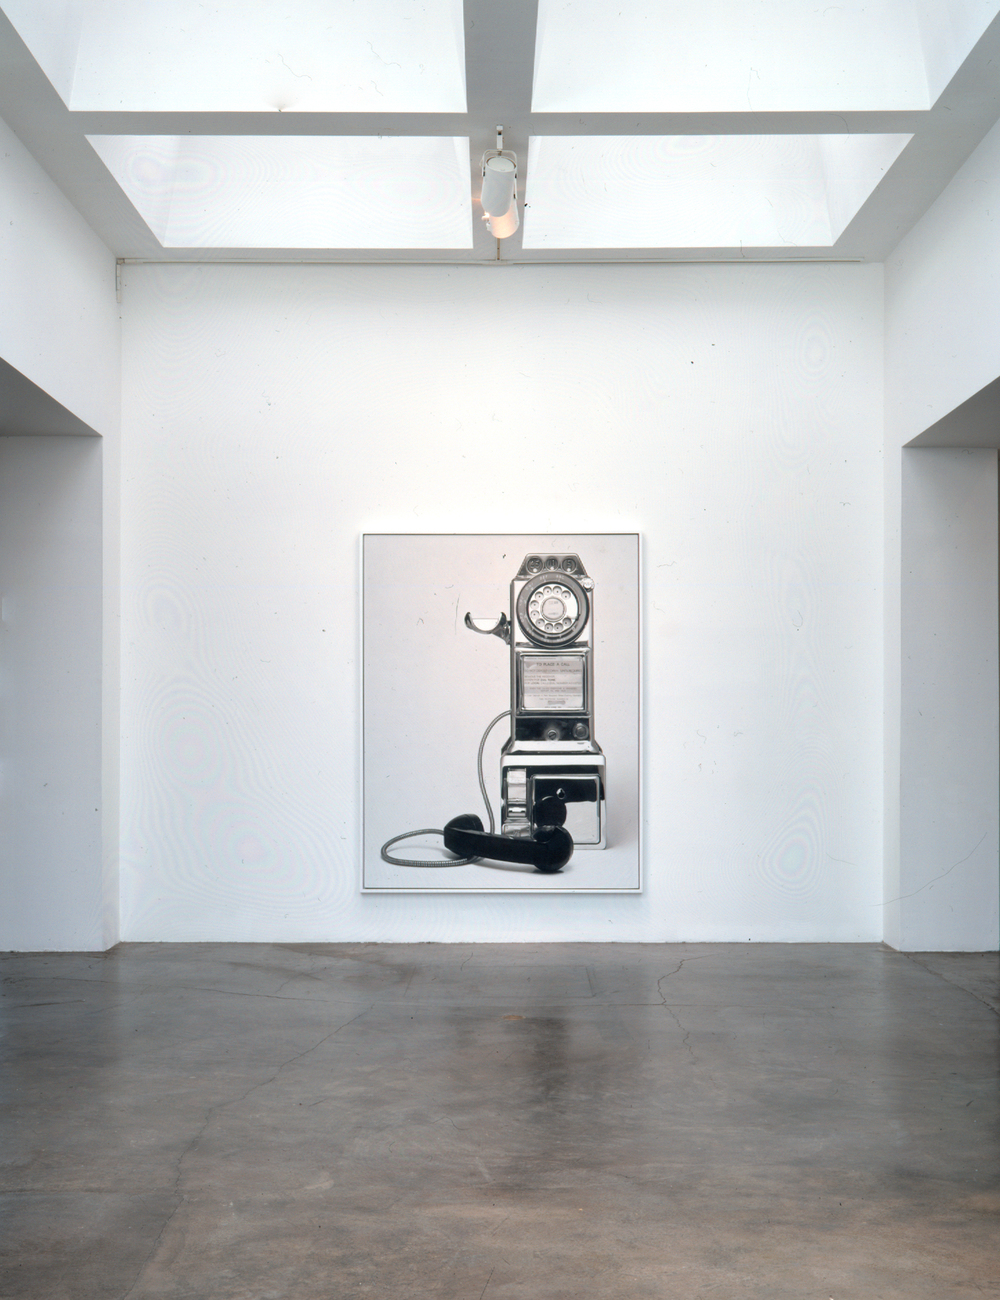 Installation of Untitled No. 26 (2003, Forum Gallery, Los Angeles)